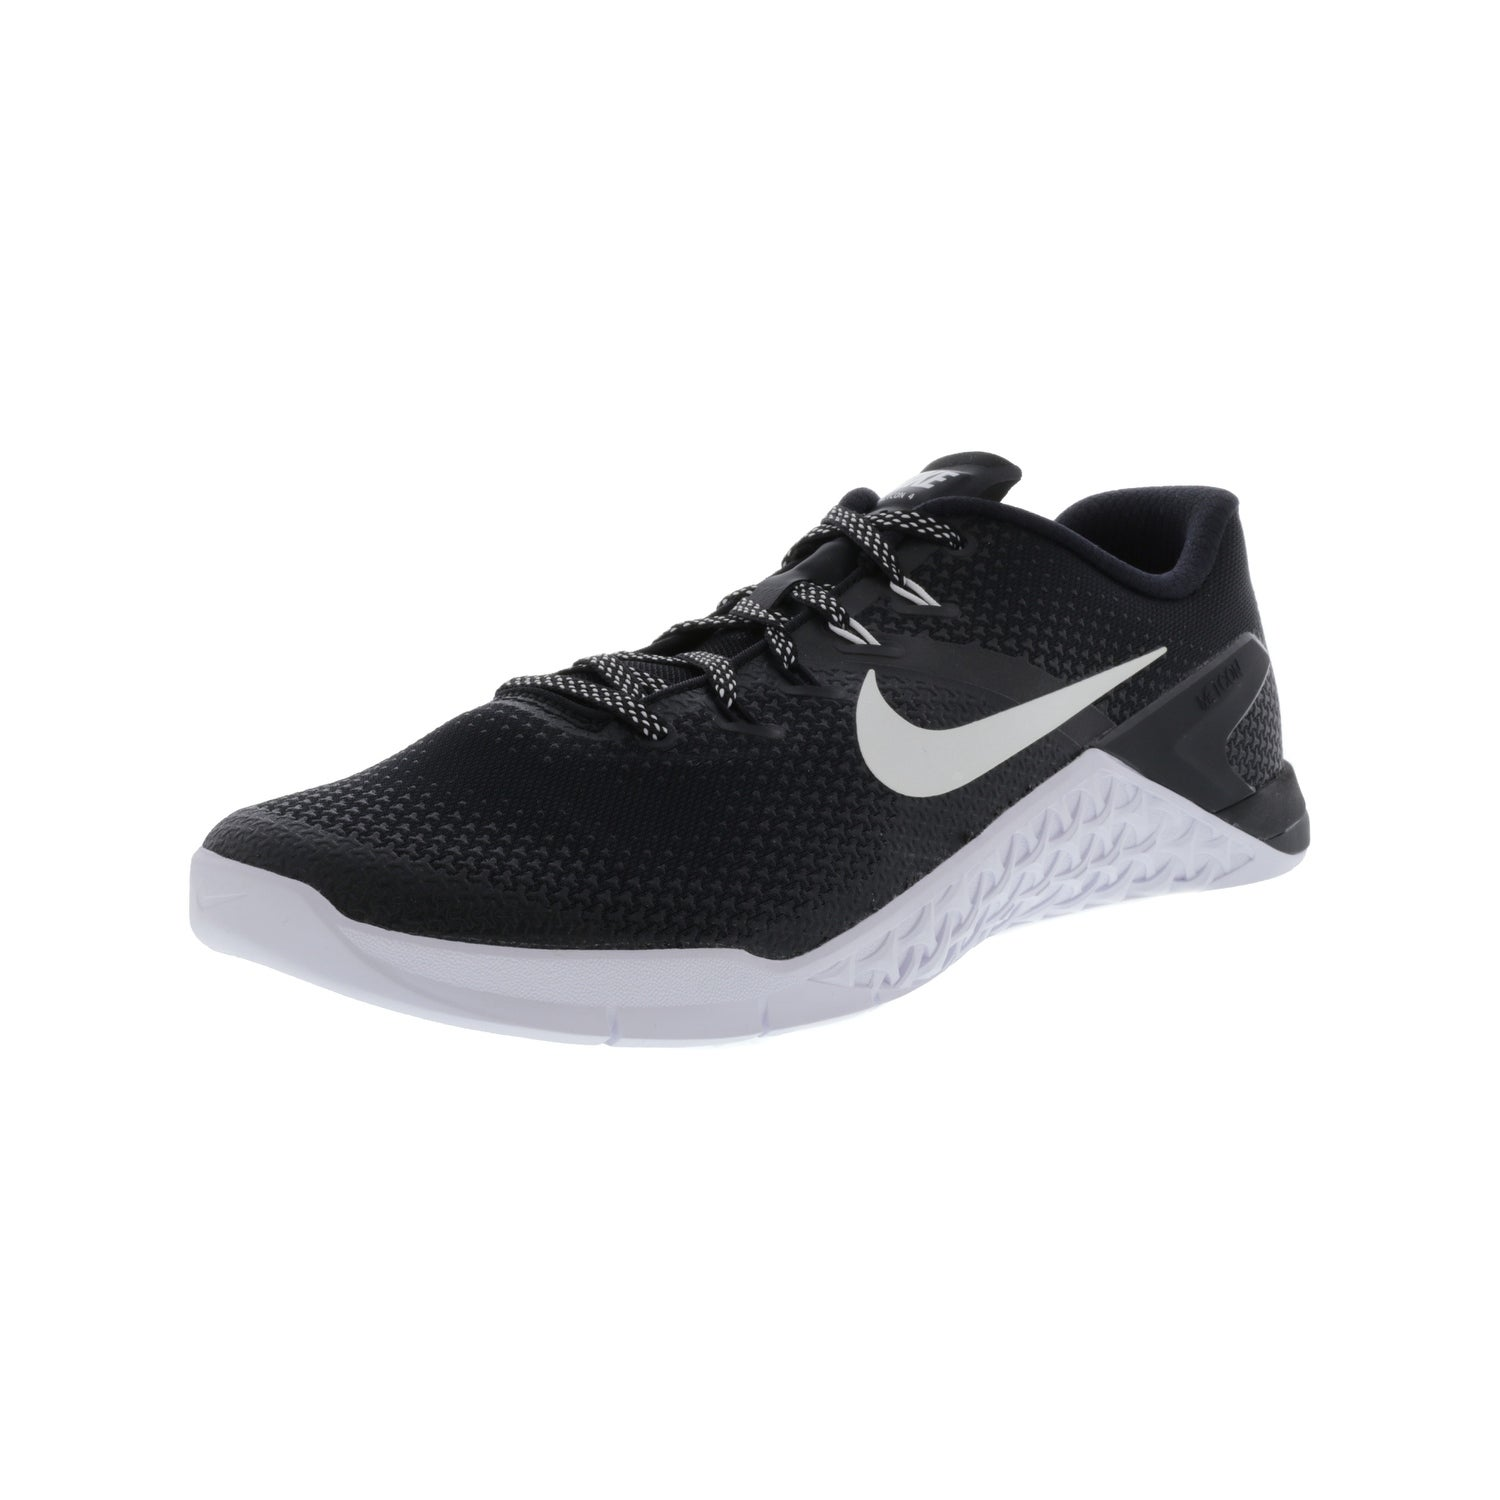 835c2d47f Shop Nike Men's Metcon 4 Ankle-High Cross Trainer Shoe - Free Shipping Today  - Overstock - 25491747